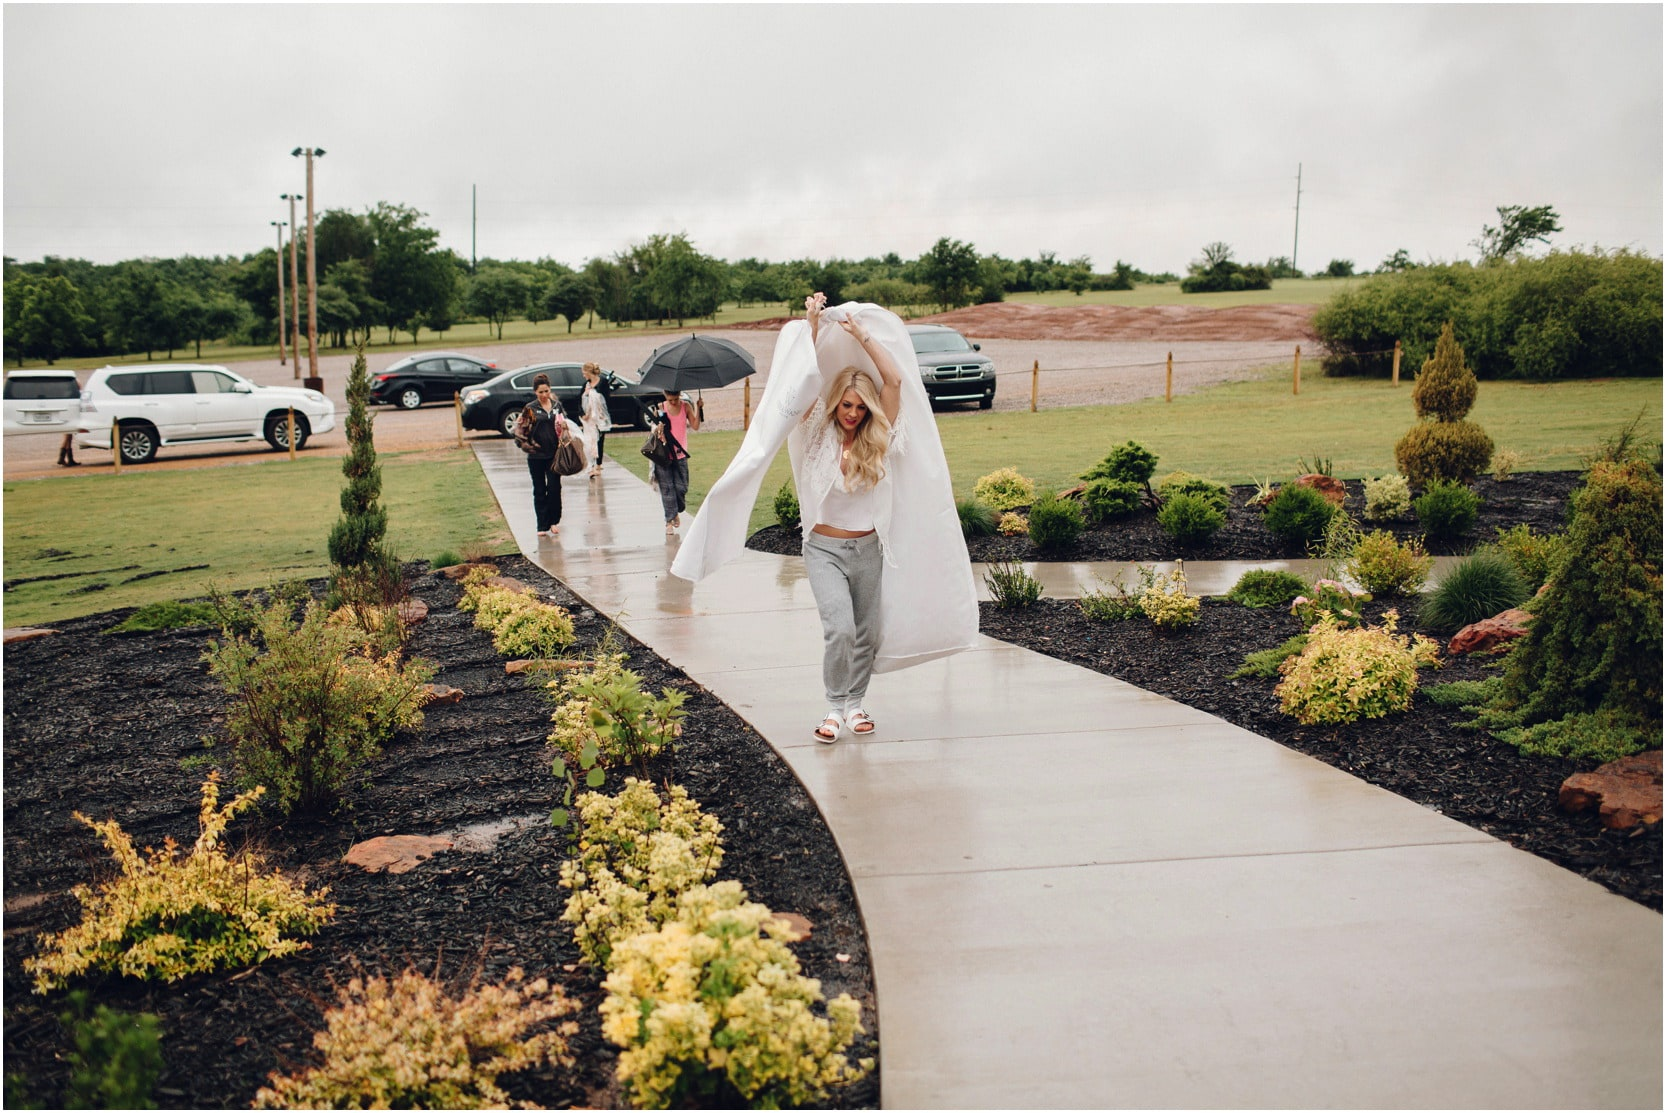 coderhillenburg_oklahoma_wedding__20_blogstomped